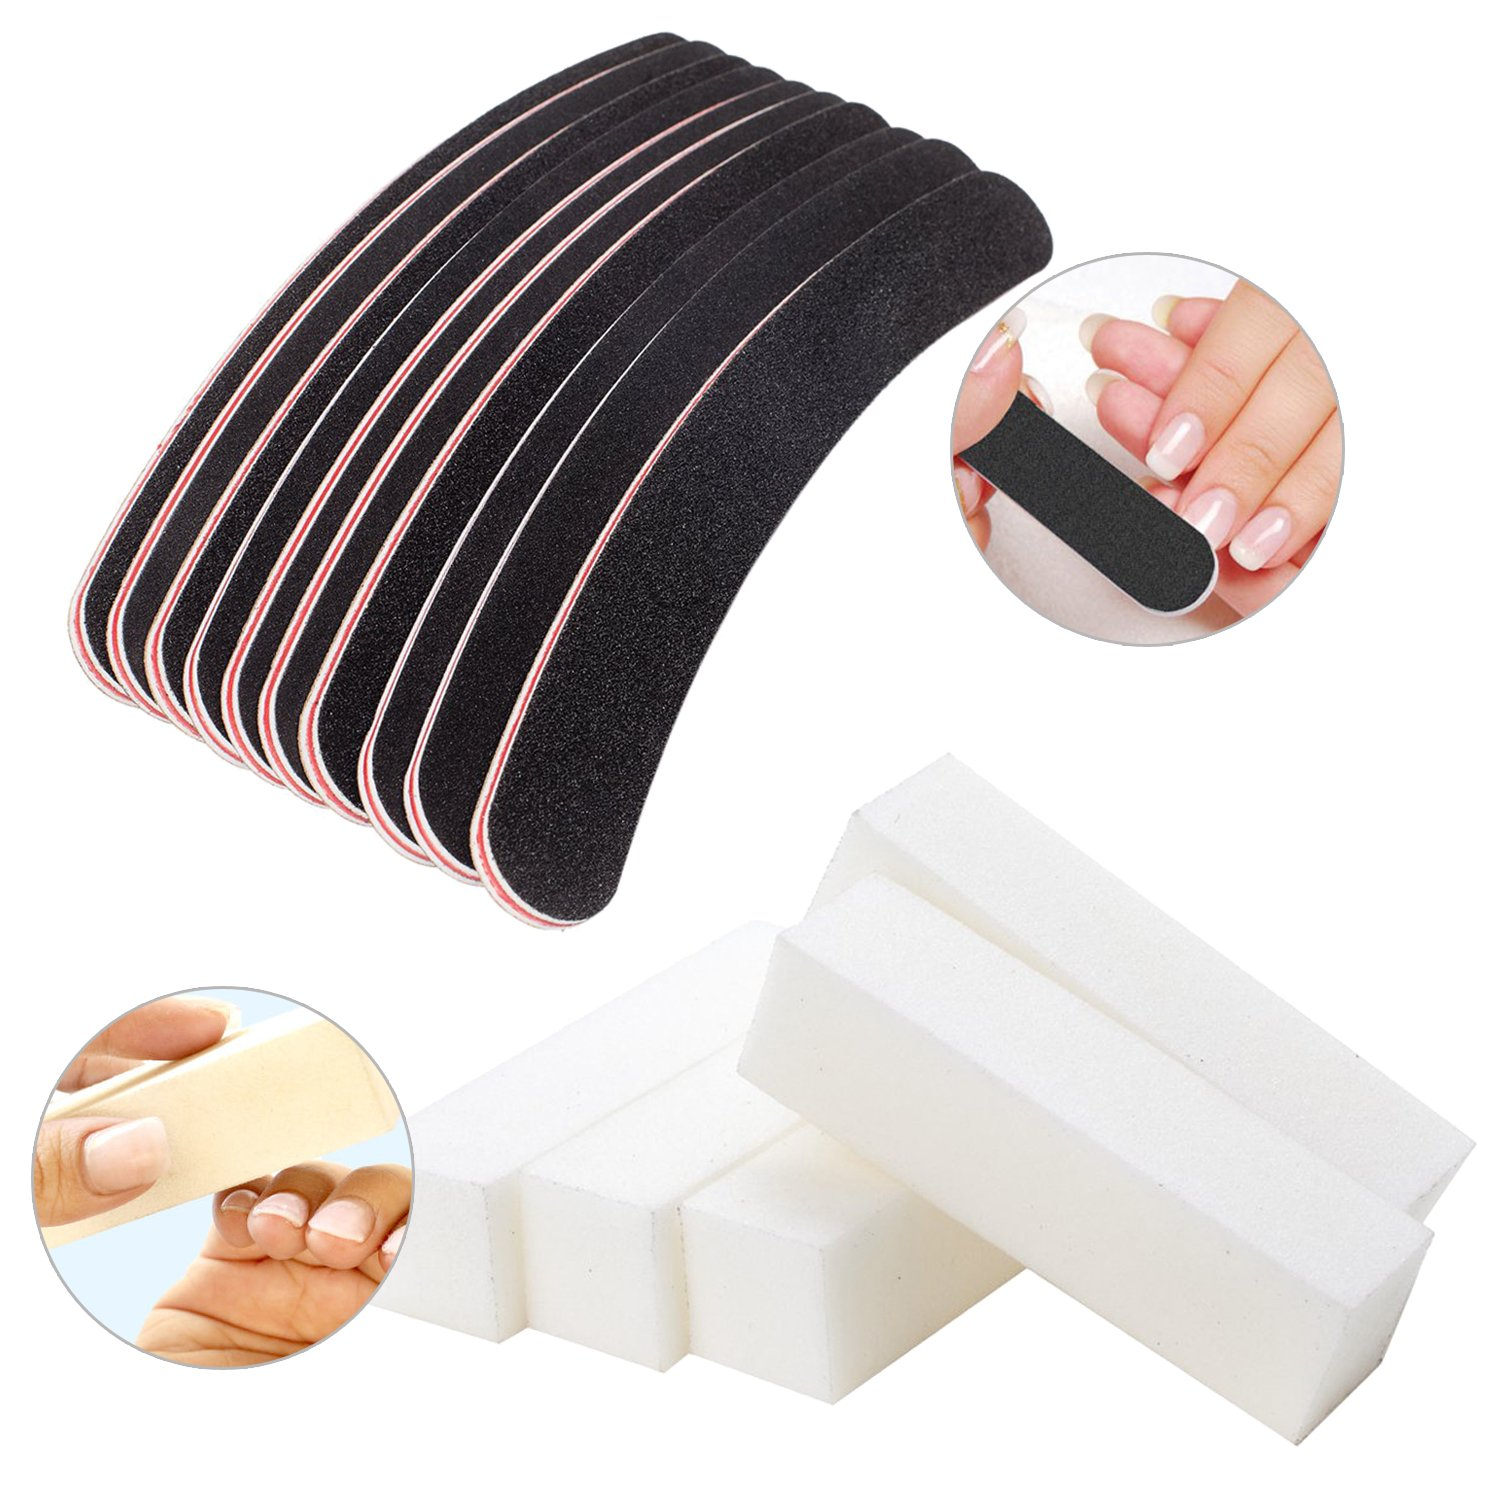 Fantastic Deal Set Kit of Professional High Quality Manicure Pedicure Nail Art Accessories Tools Including 5pcs White Buffers / Sanding / Buffing Blocks 100/100 And 10pcs Curved Banana / Boomerang Files / Filers By VAGA